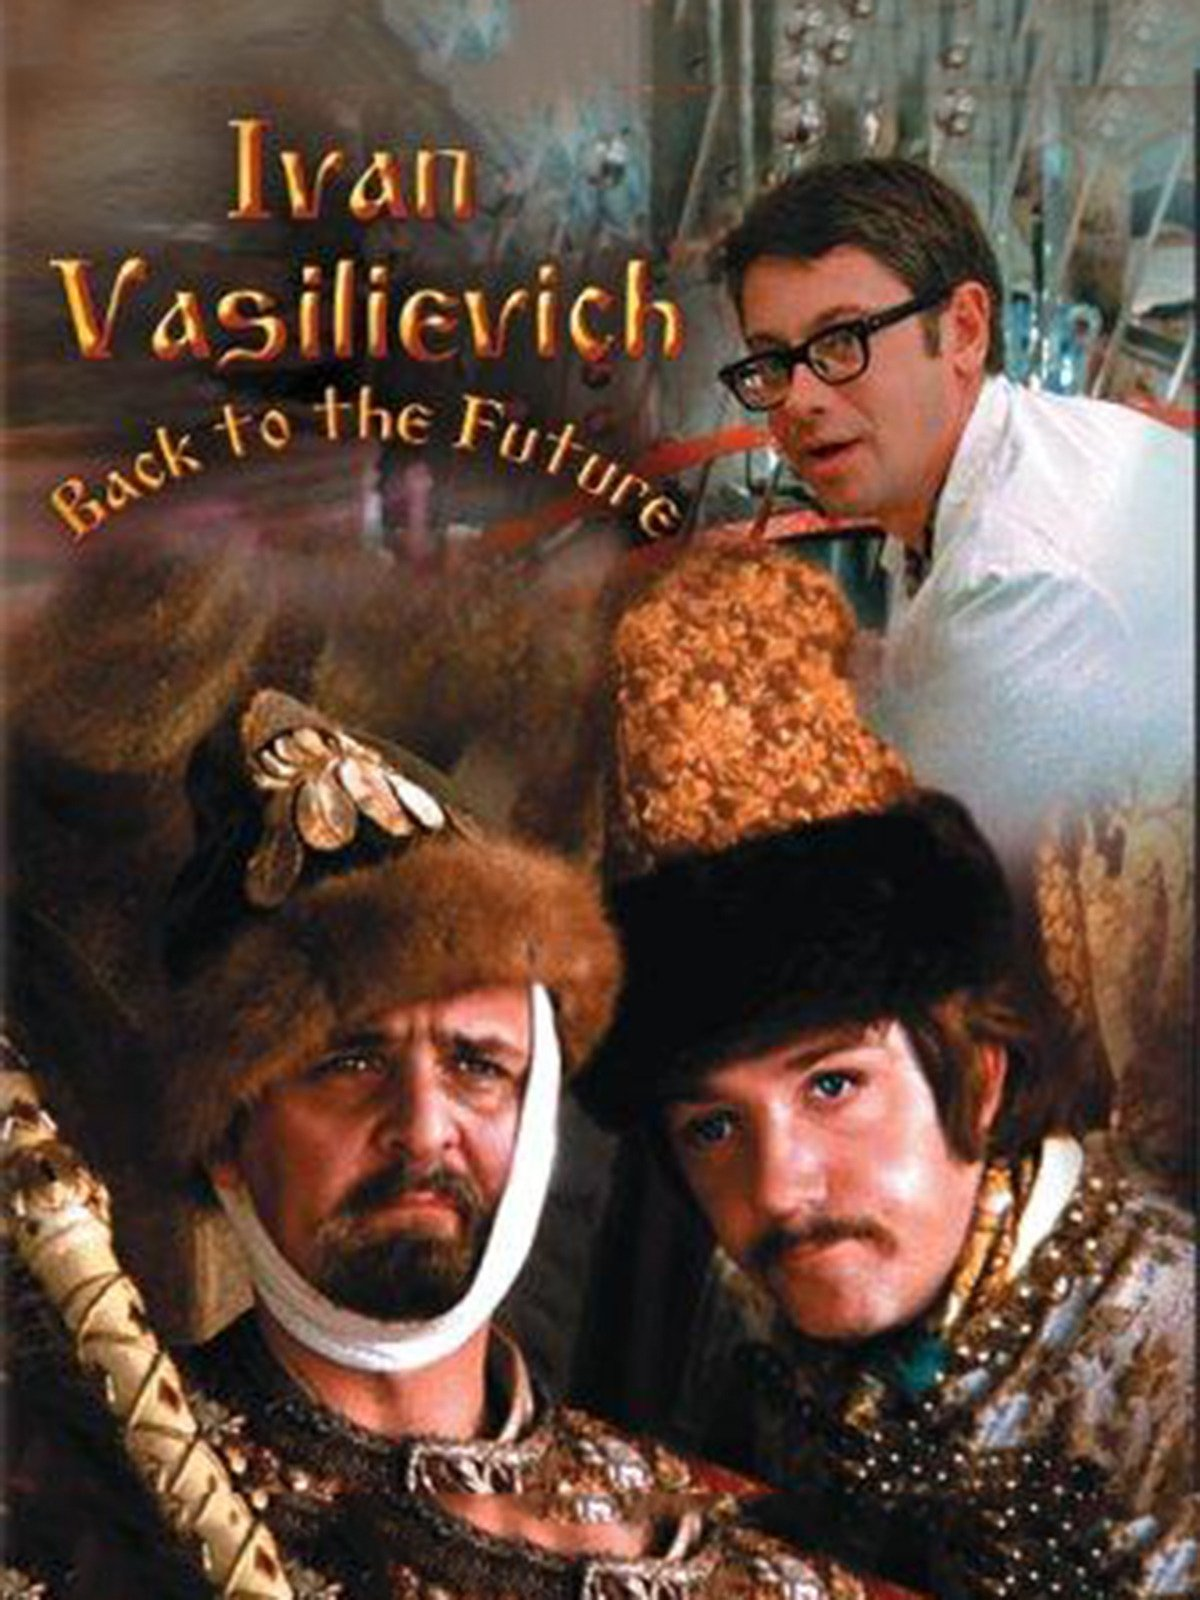 Ivan Vasilievich Back to the Future on Amazon Prime Video UK